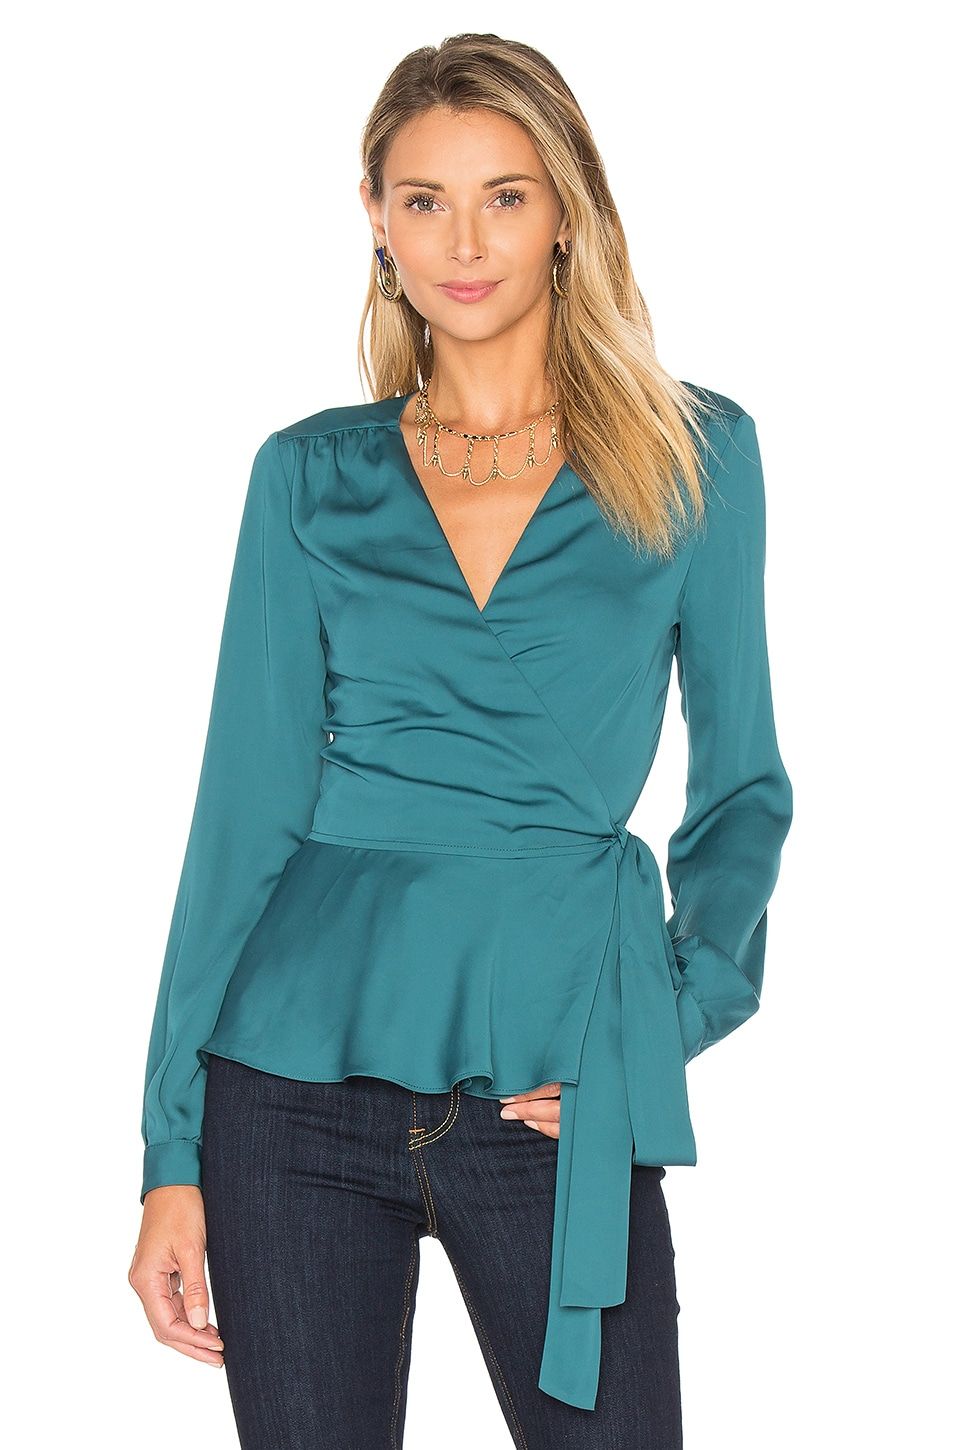 The Long Sleeve Wrap Blouse